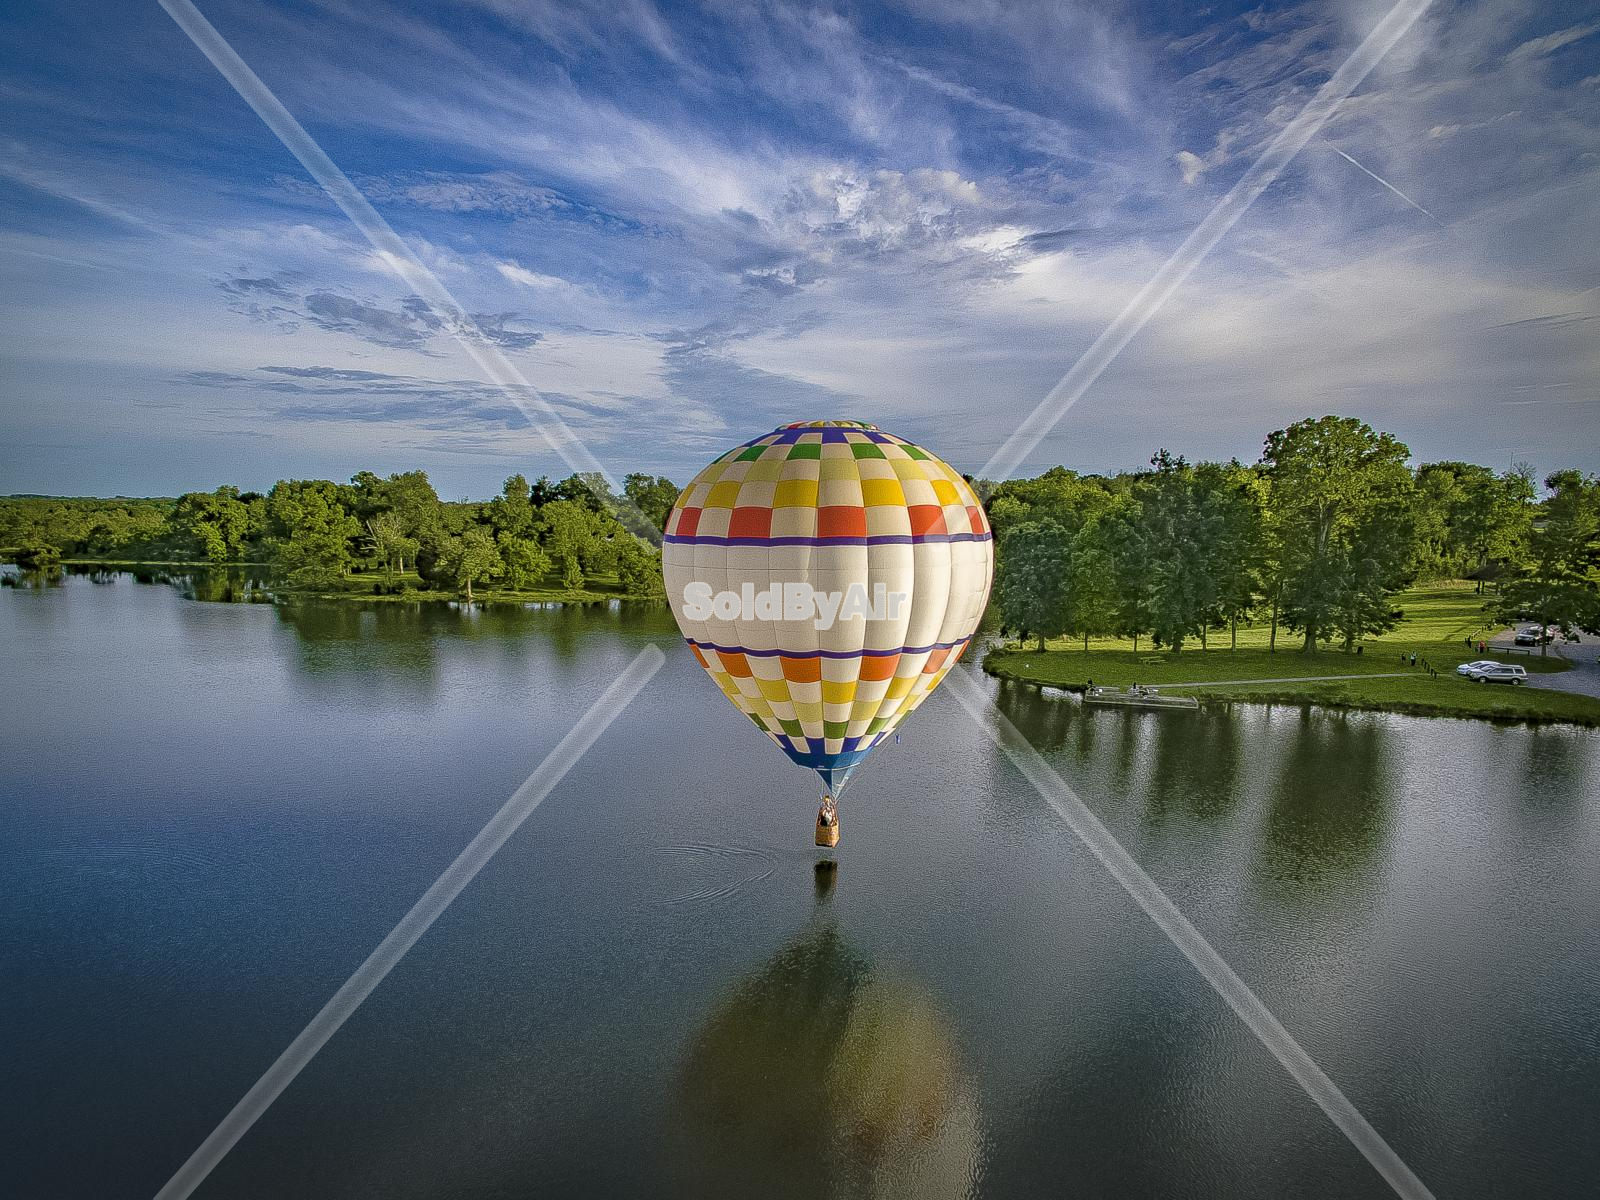 Drone Photo of Hot Air Balloon over lake in Louisville Kentucky